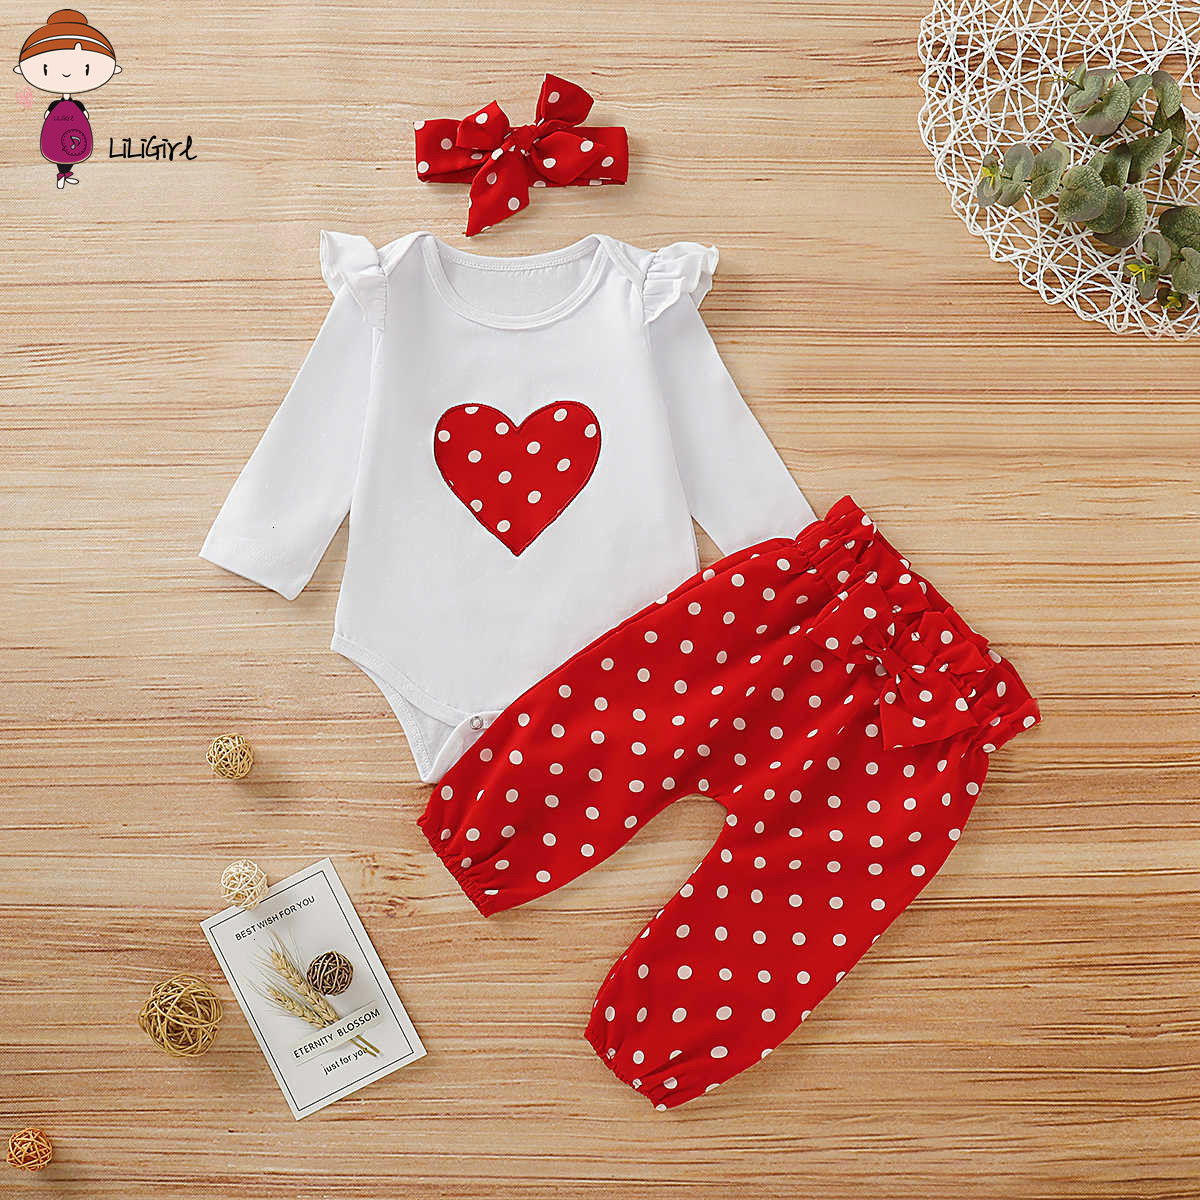 LILIGRIL Newborn Baby Girls Clothes Long Sleeve Heart Print T-shirt+red Polka Dot Pants+Headband Infant  Baby Girls Clothing Set